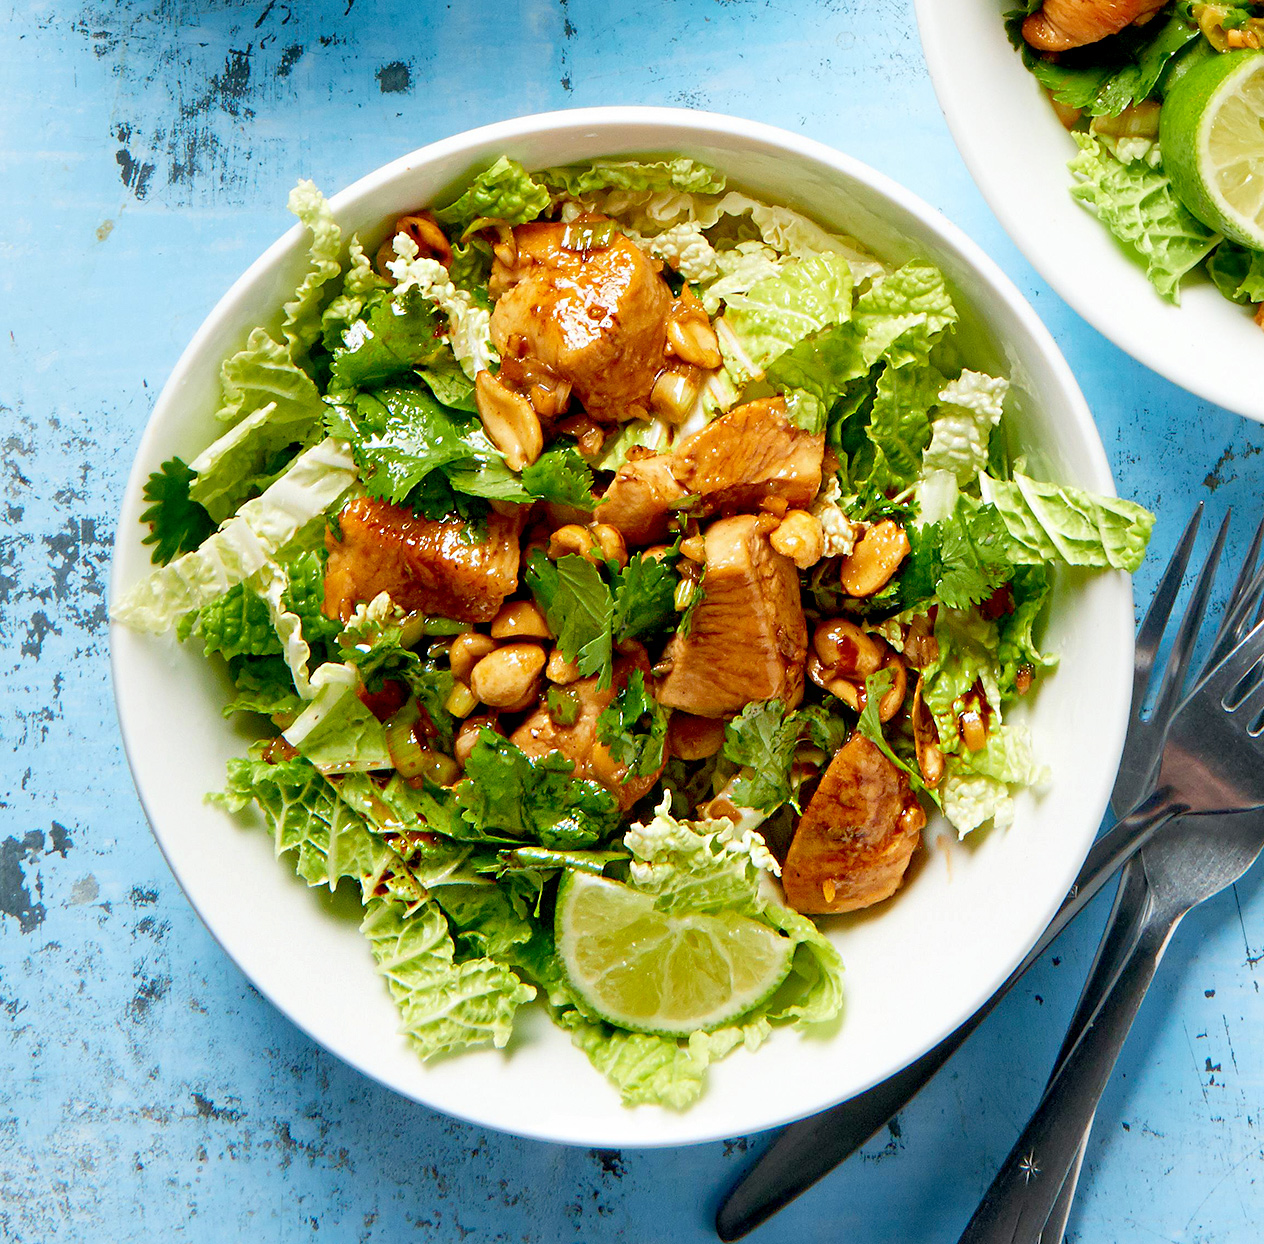 Cilantro-Ginger Chicken with Peanuts